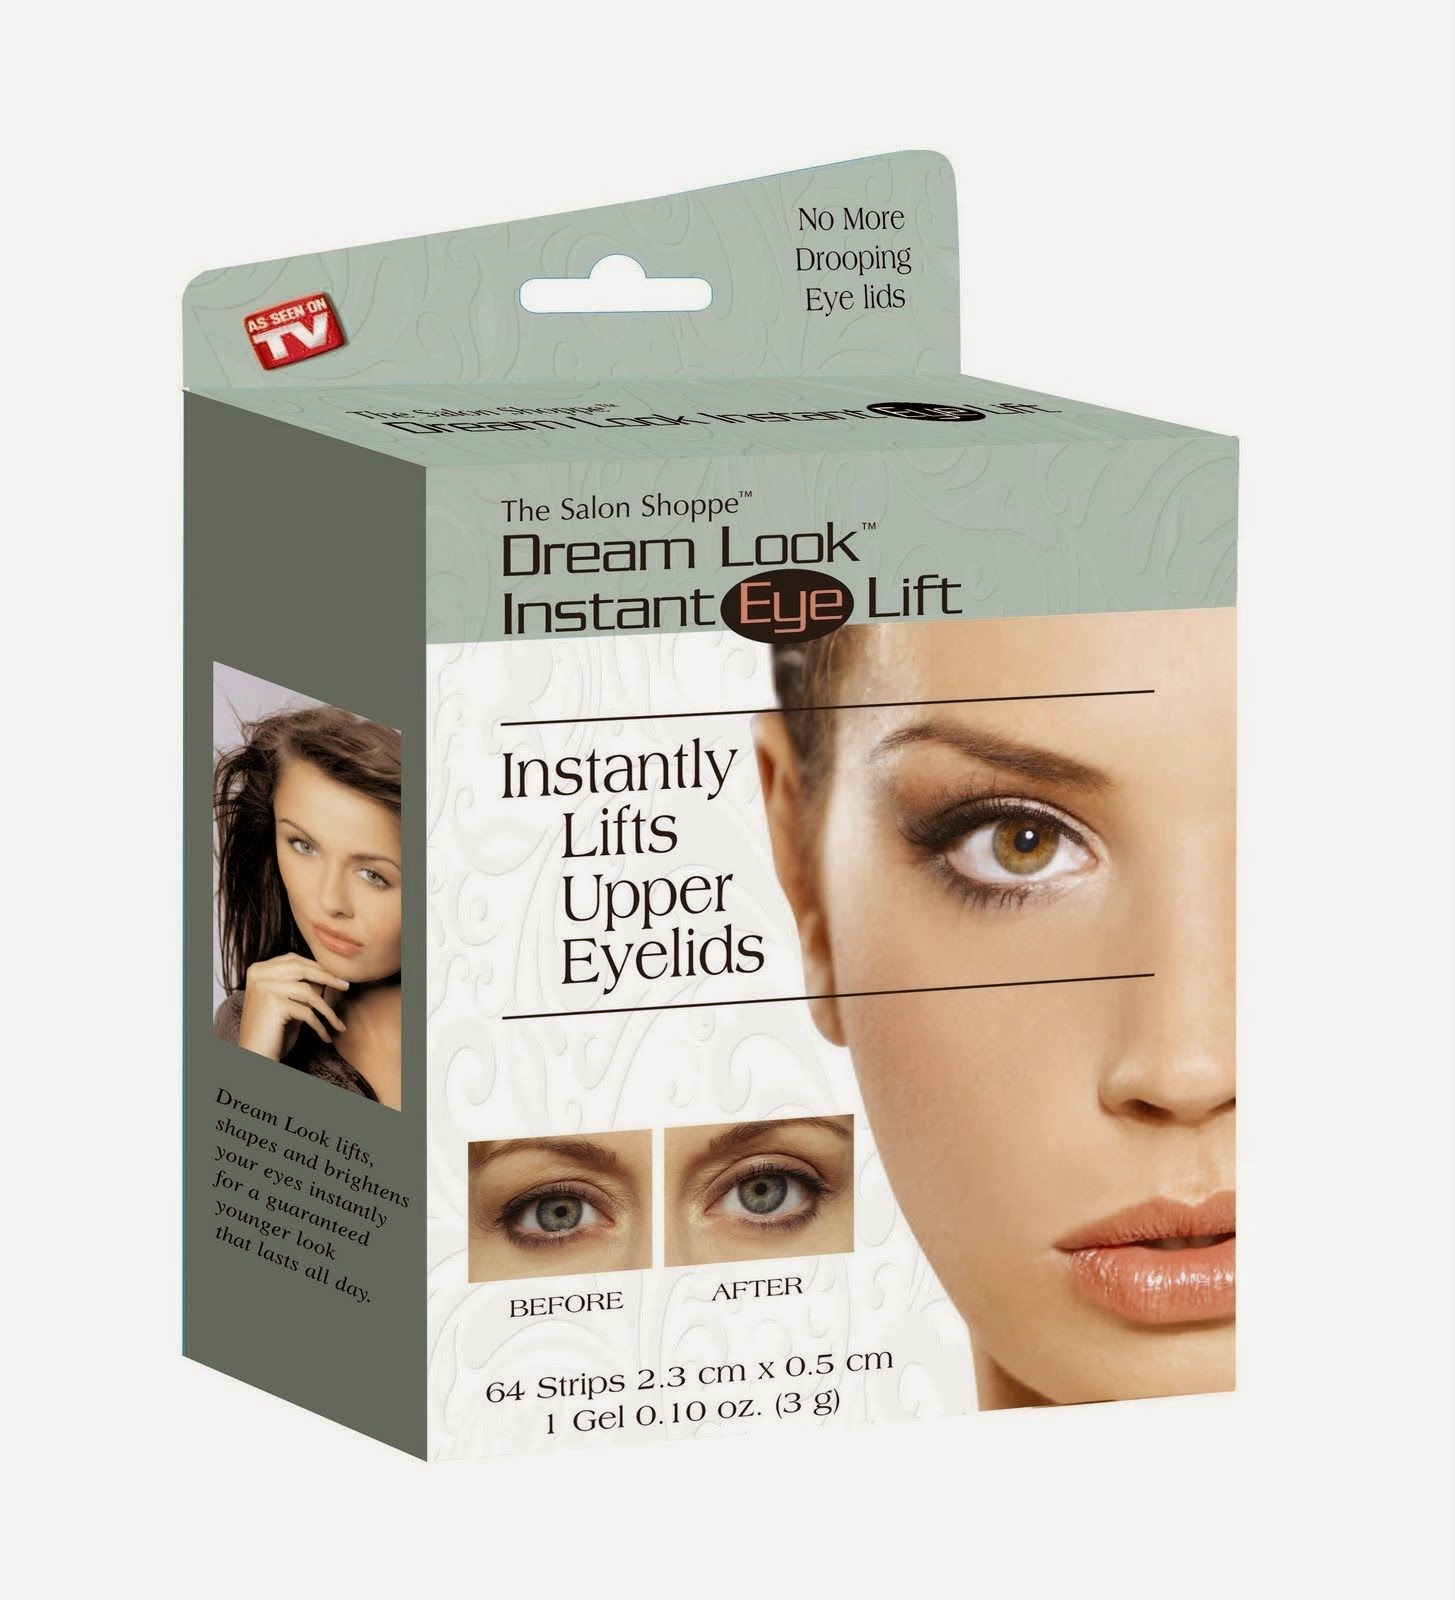 Dream Look INSTANT EYE LIFT 64 Strips & Gel - Lifts Shapes Brightens Eyes & Lids